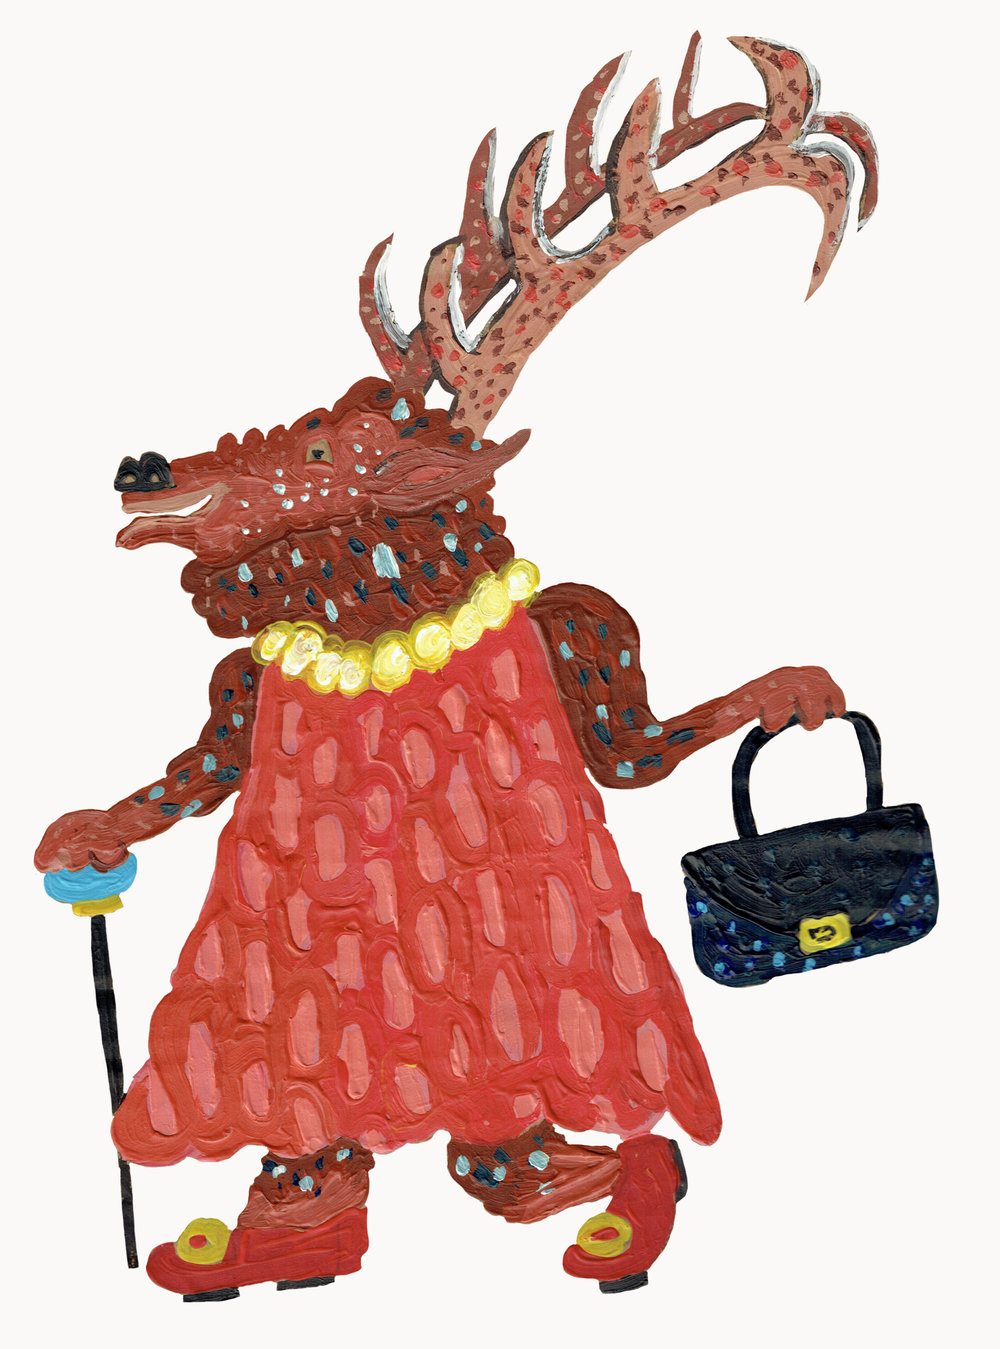 I painted this stag in a dress very quickly. You can tell because the paint is very blobby. It was the last one I made so there was a bit of surplus paint to use up.